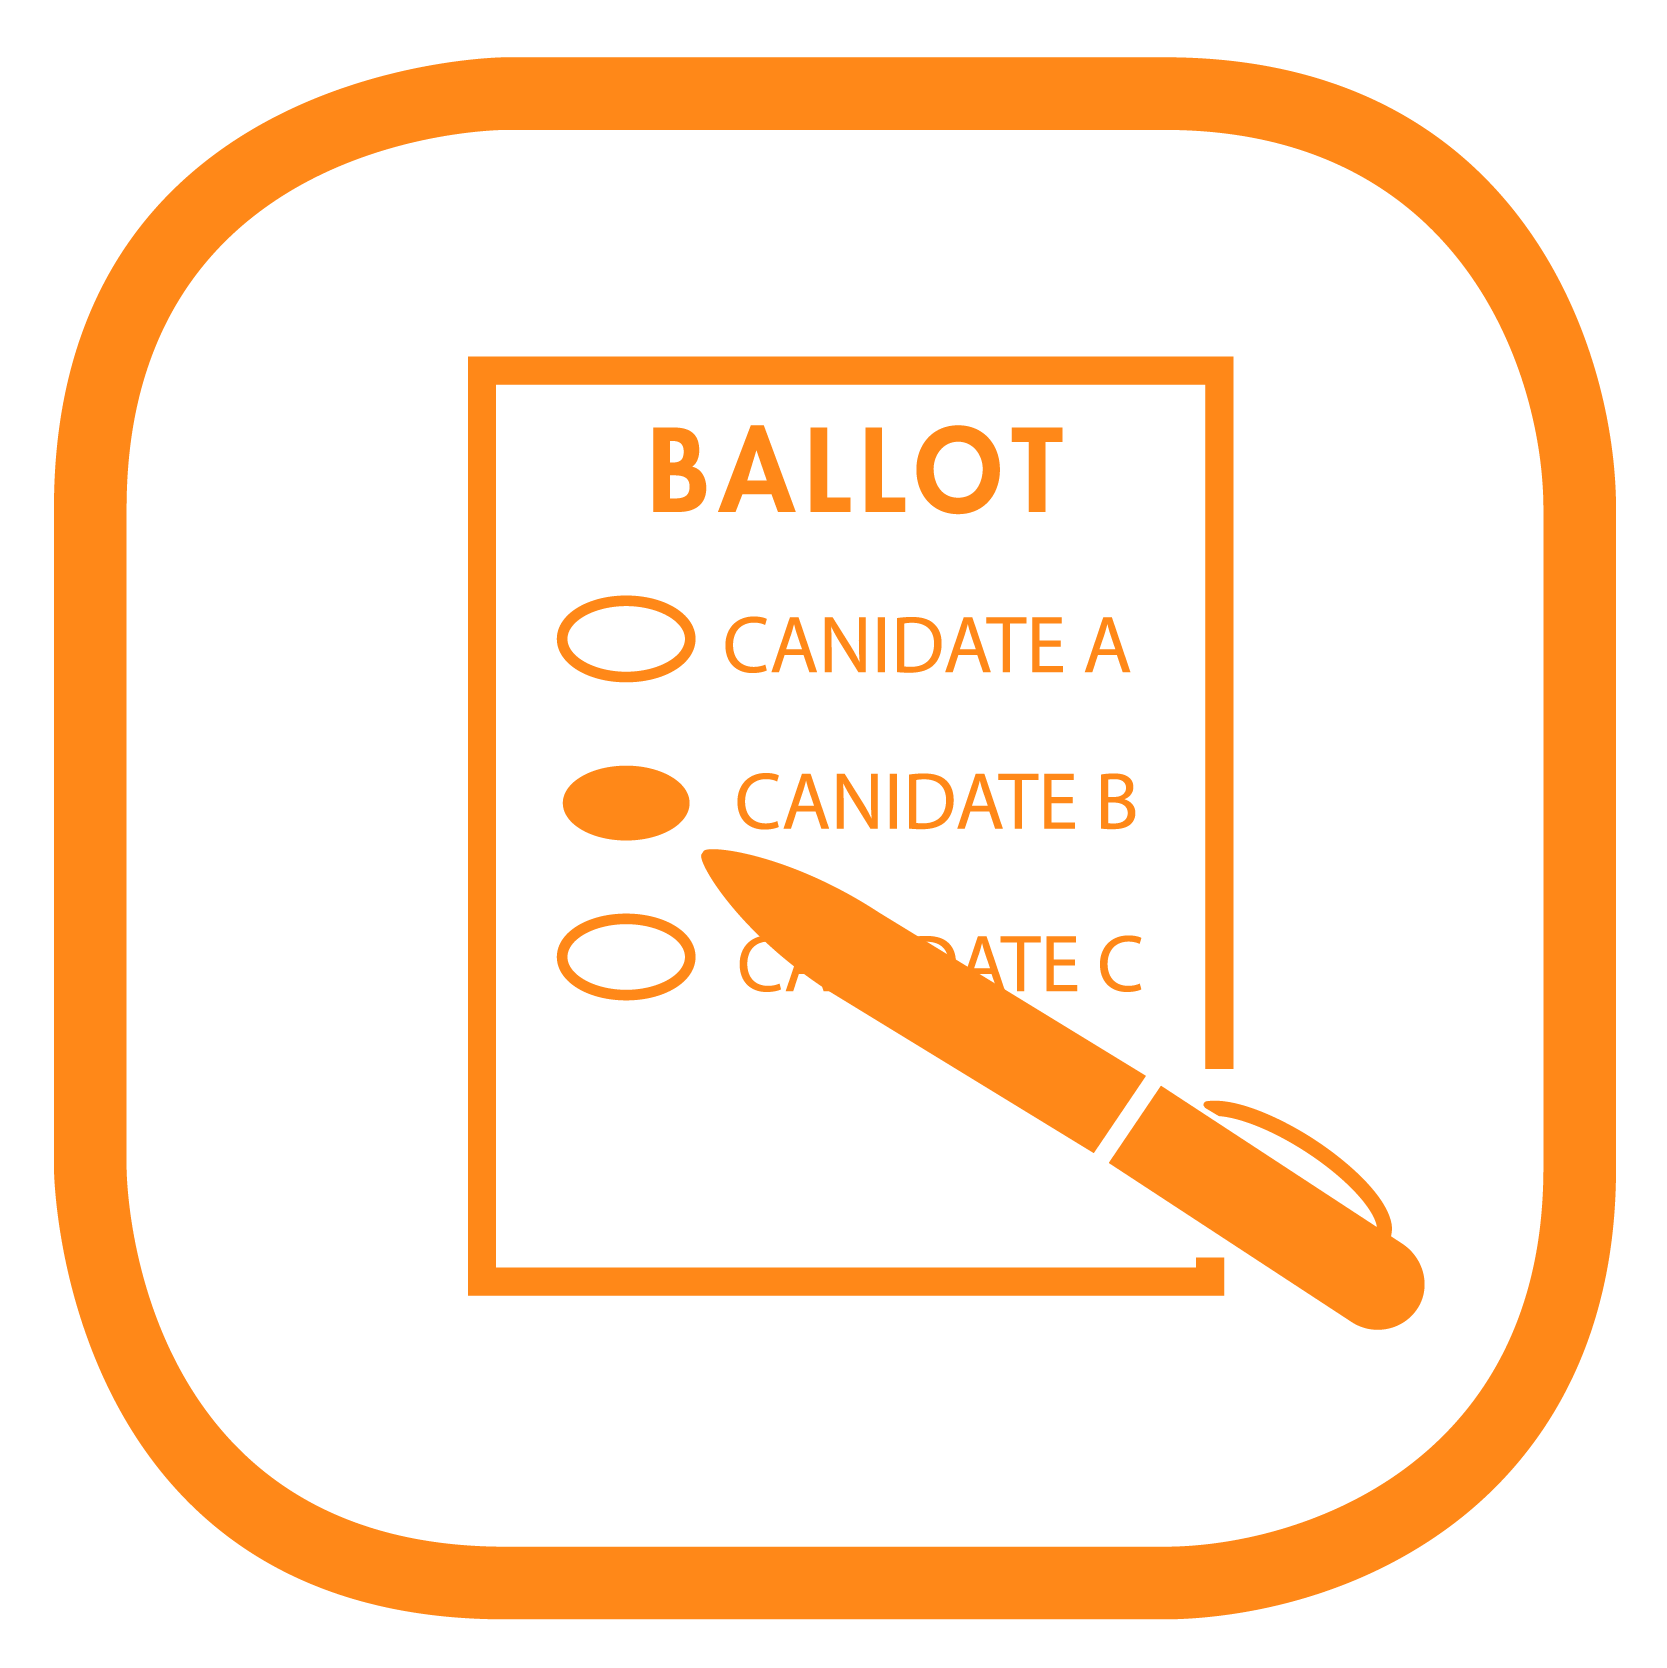 What's On My Ballot? link's image